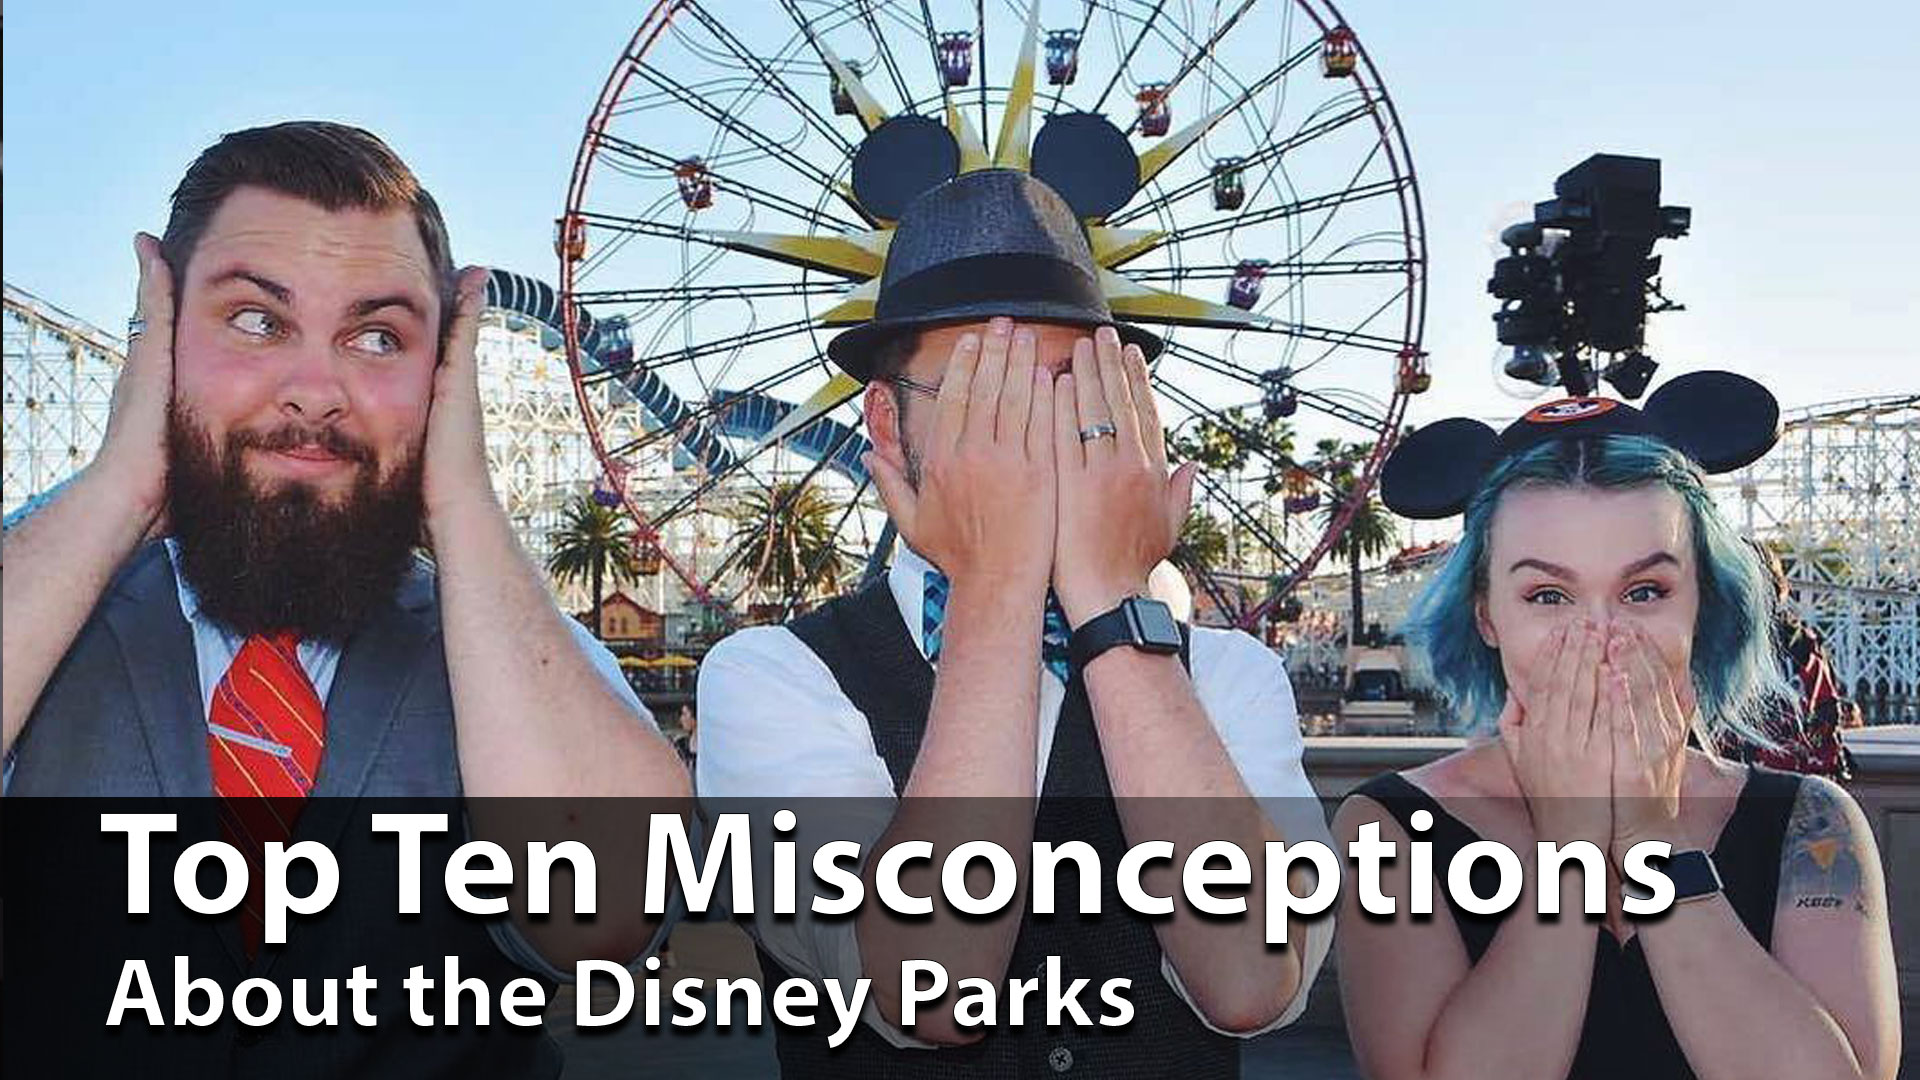 Top Ten Misconceptions About the Disney Parks